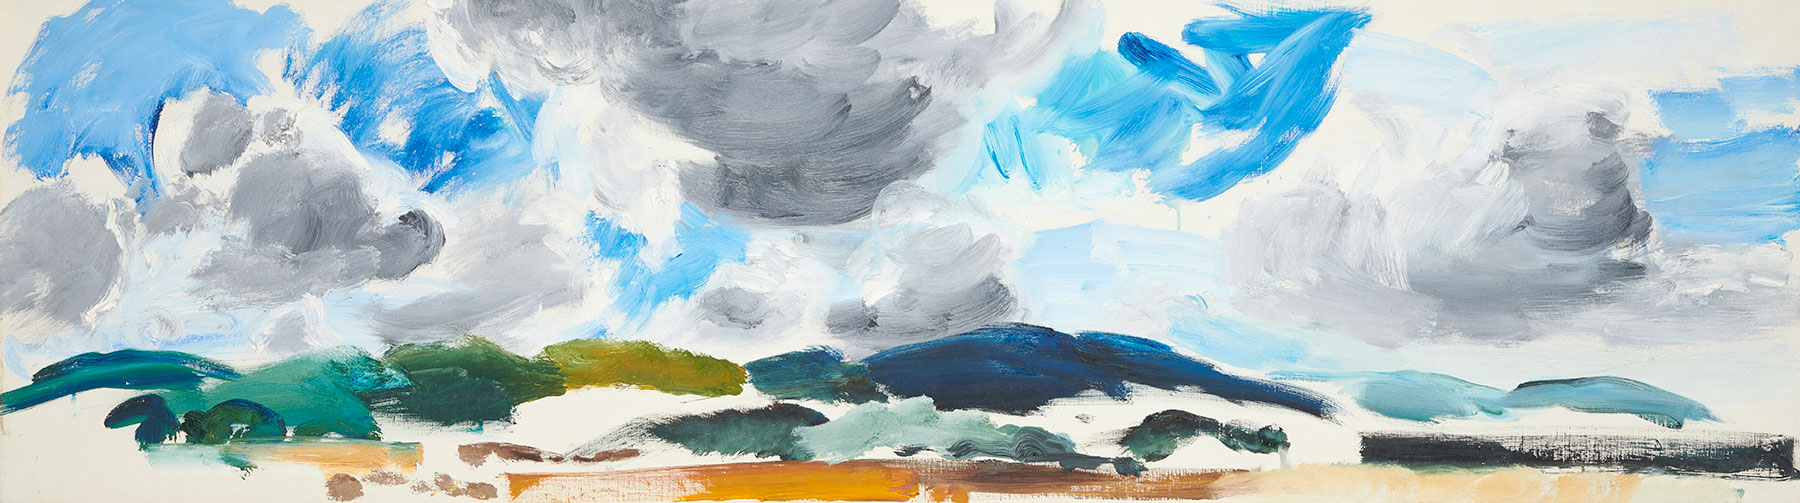 South Downs under South West Clouds, 1964, John Hitchens, Artist